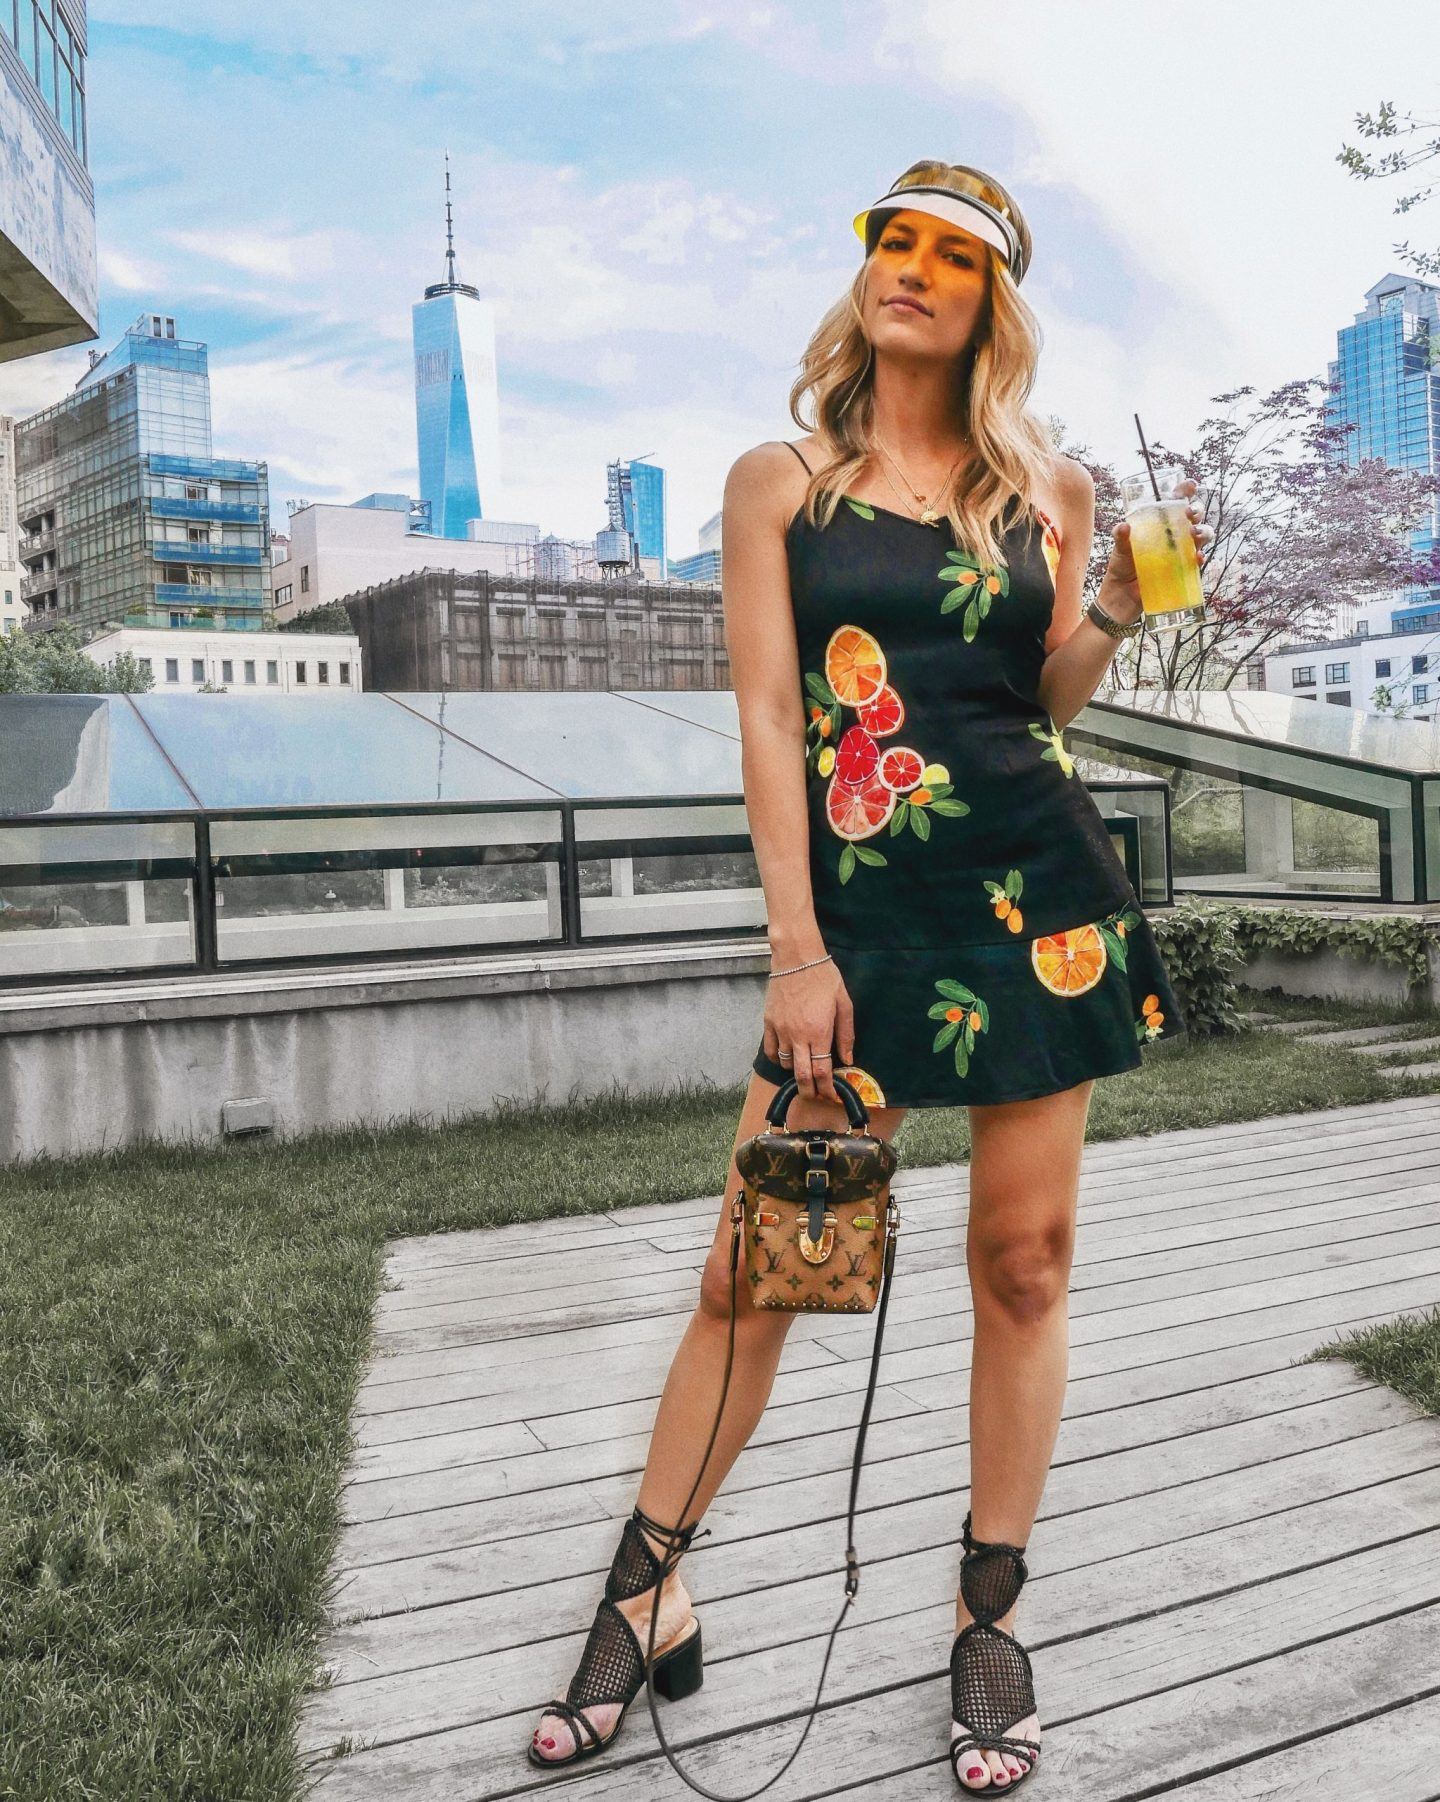 Cassandra DiMicco, Cass DiMicco, Dressed For Dreams, NYC, New York City, New York, Street Style NYC, Street Style 2018, NYC Street Style Street Style Outfits, 2018 Trends, NYC Fashion Blogger, NYC to do list, NYC to do, NYC bucket list, NYC Instagram Spots, TriBeCa, The James Hotel, The James NYC, Jimmy at the James, Schutz Palinda Sandals, Schutz Sandals, LPA Dress, Fruit Dress, Dior Visor, Louis Vuitton Reverse Monogram Camera Box Bag, Louis Vuitton Camera Box Bag, Louis Vuitton, NYC Views